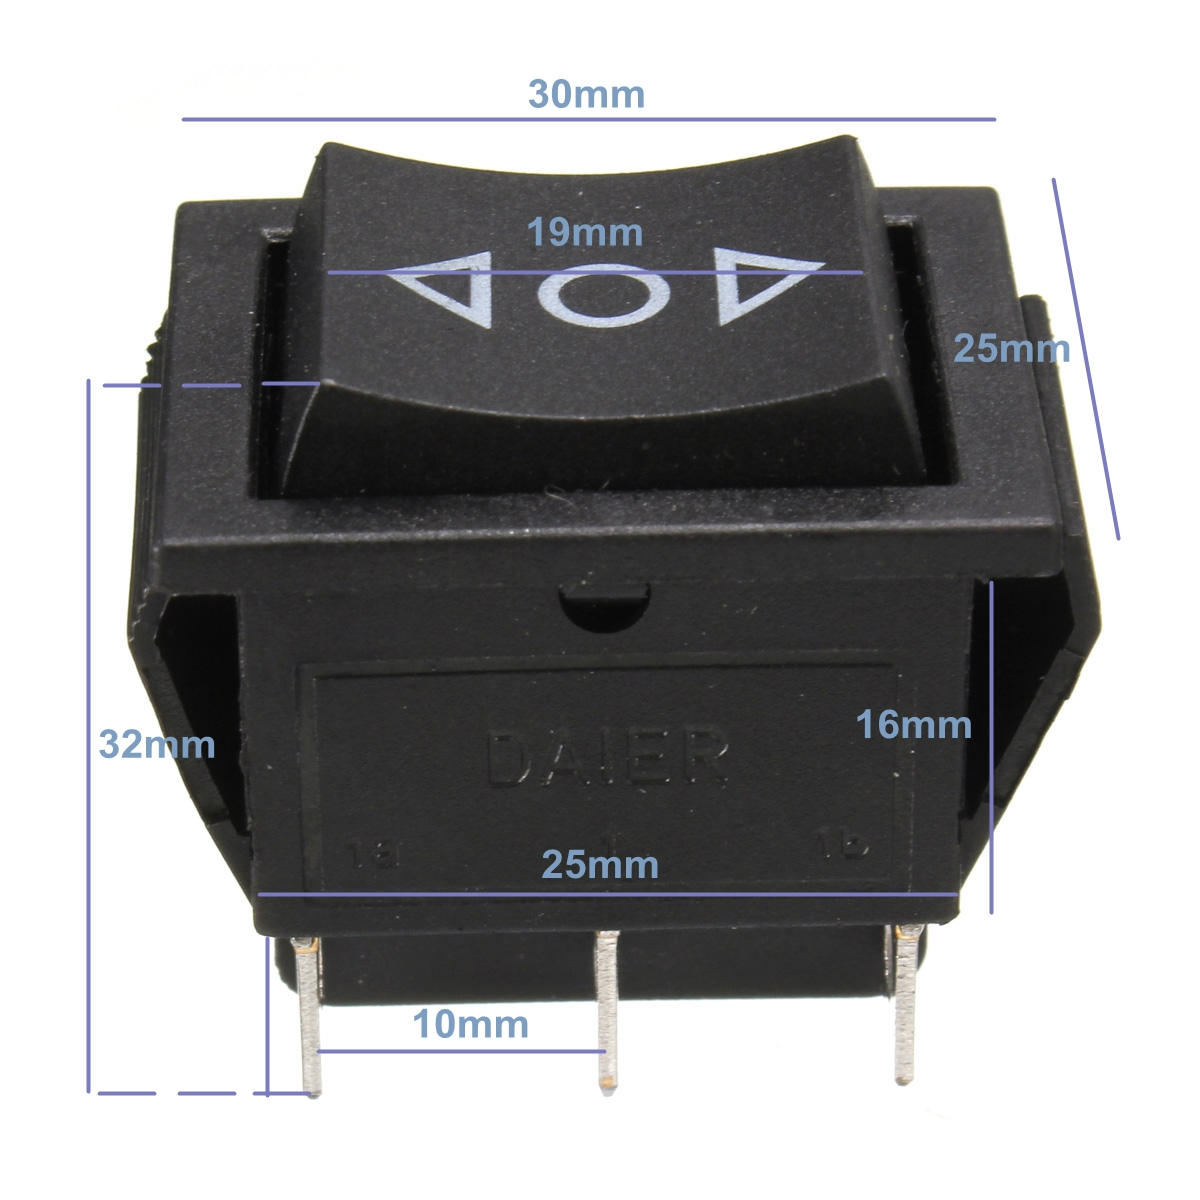 12v Dpdt 6 Pins Car Electric Window Switch Up Down Aerial Momentary Wiring Diagram Detail Image